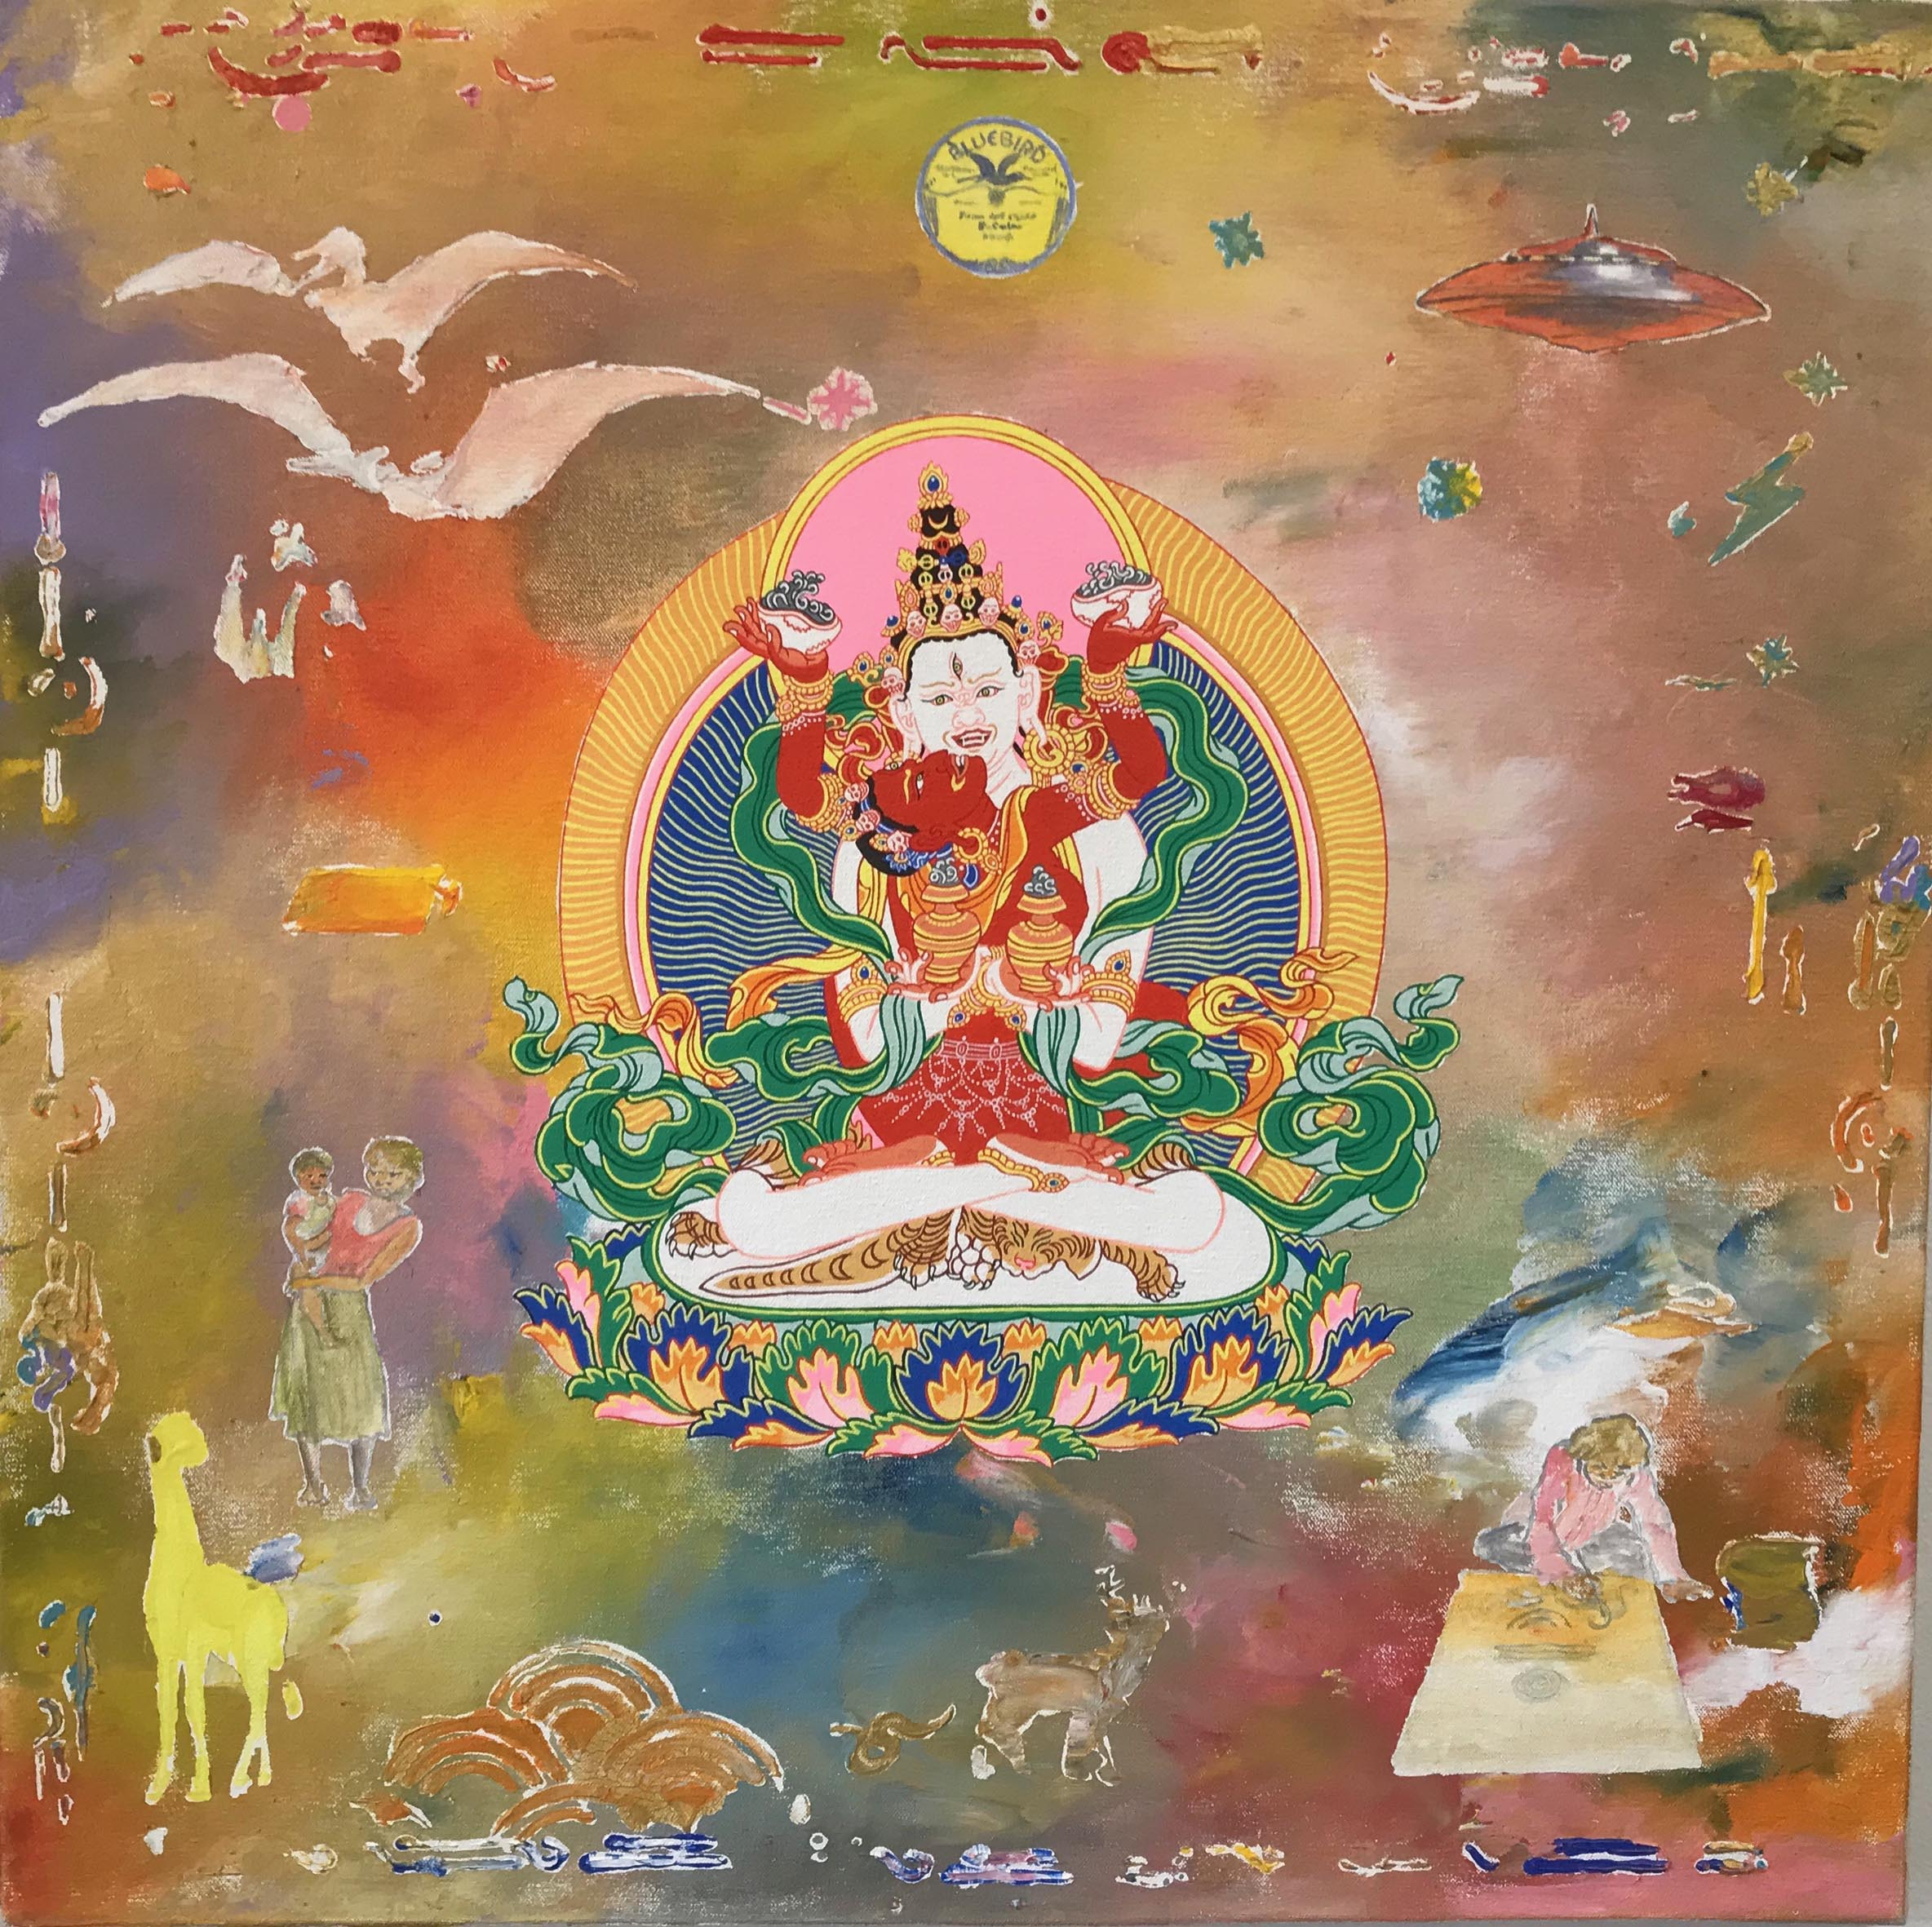 Sitasamvara. 2019. Acrylic on canvas (with Daniel Bogunovic) 60 x 60 cm $2,000 SOLD